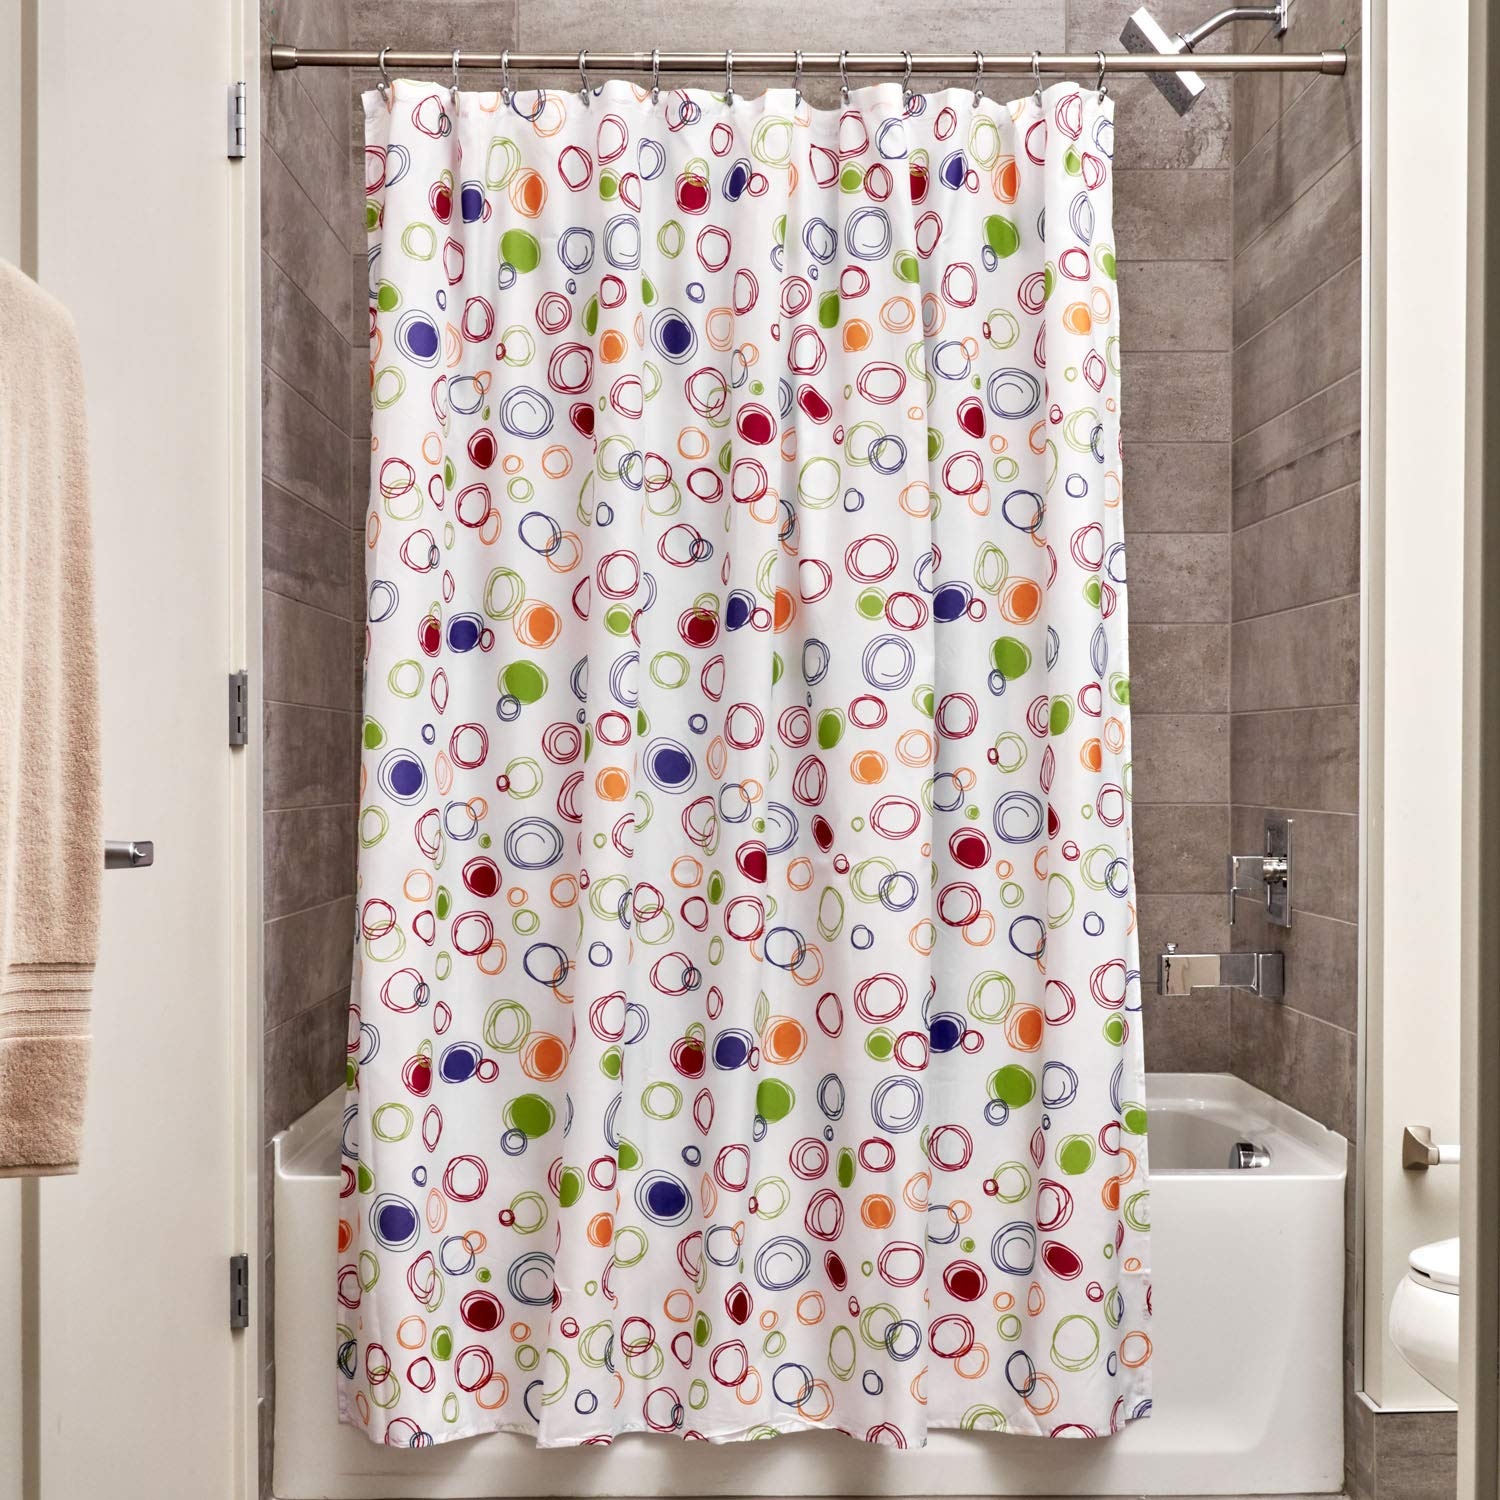 Interdesign Fabric Doodle Shower Curtain For Master Guest